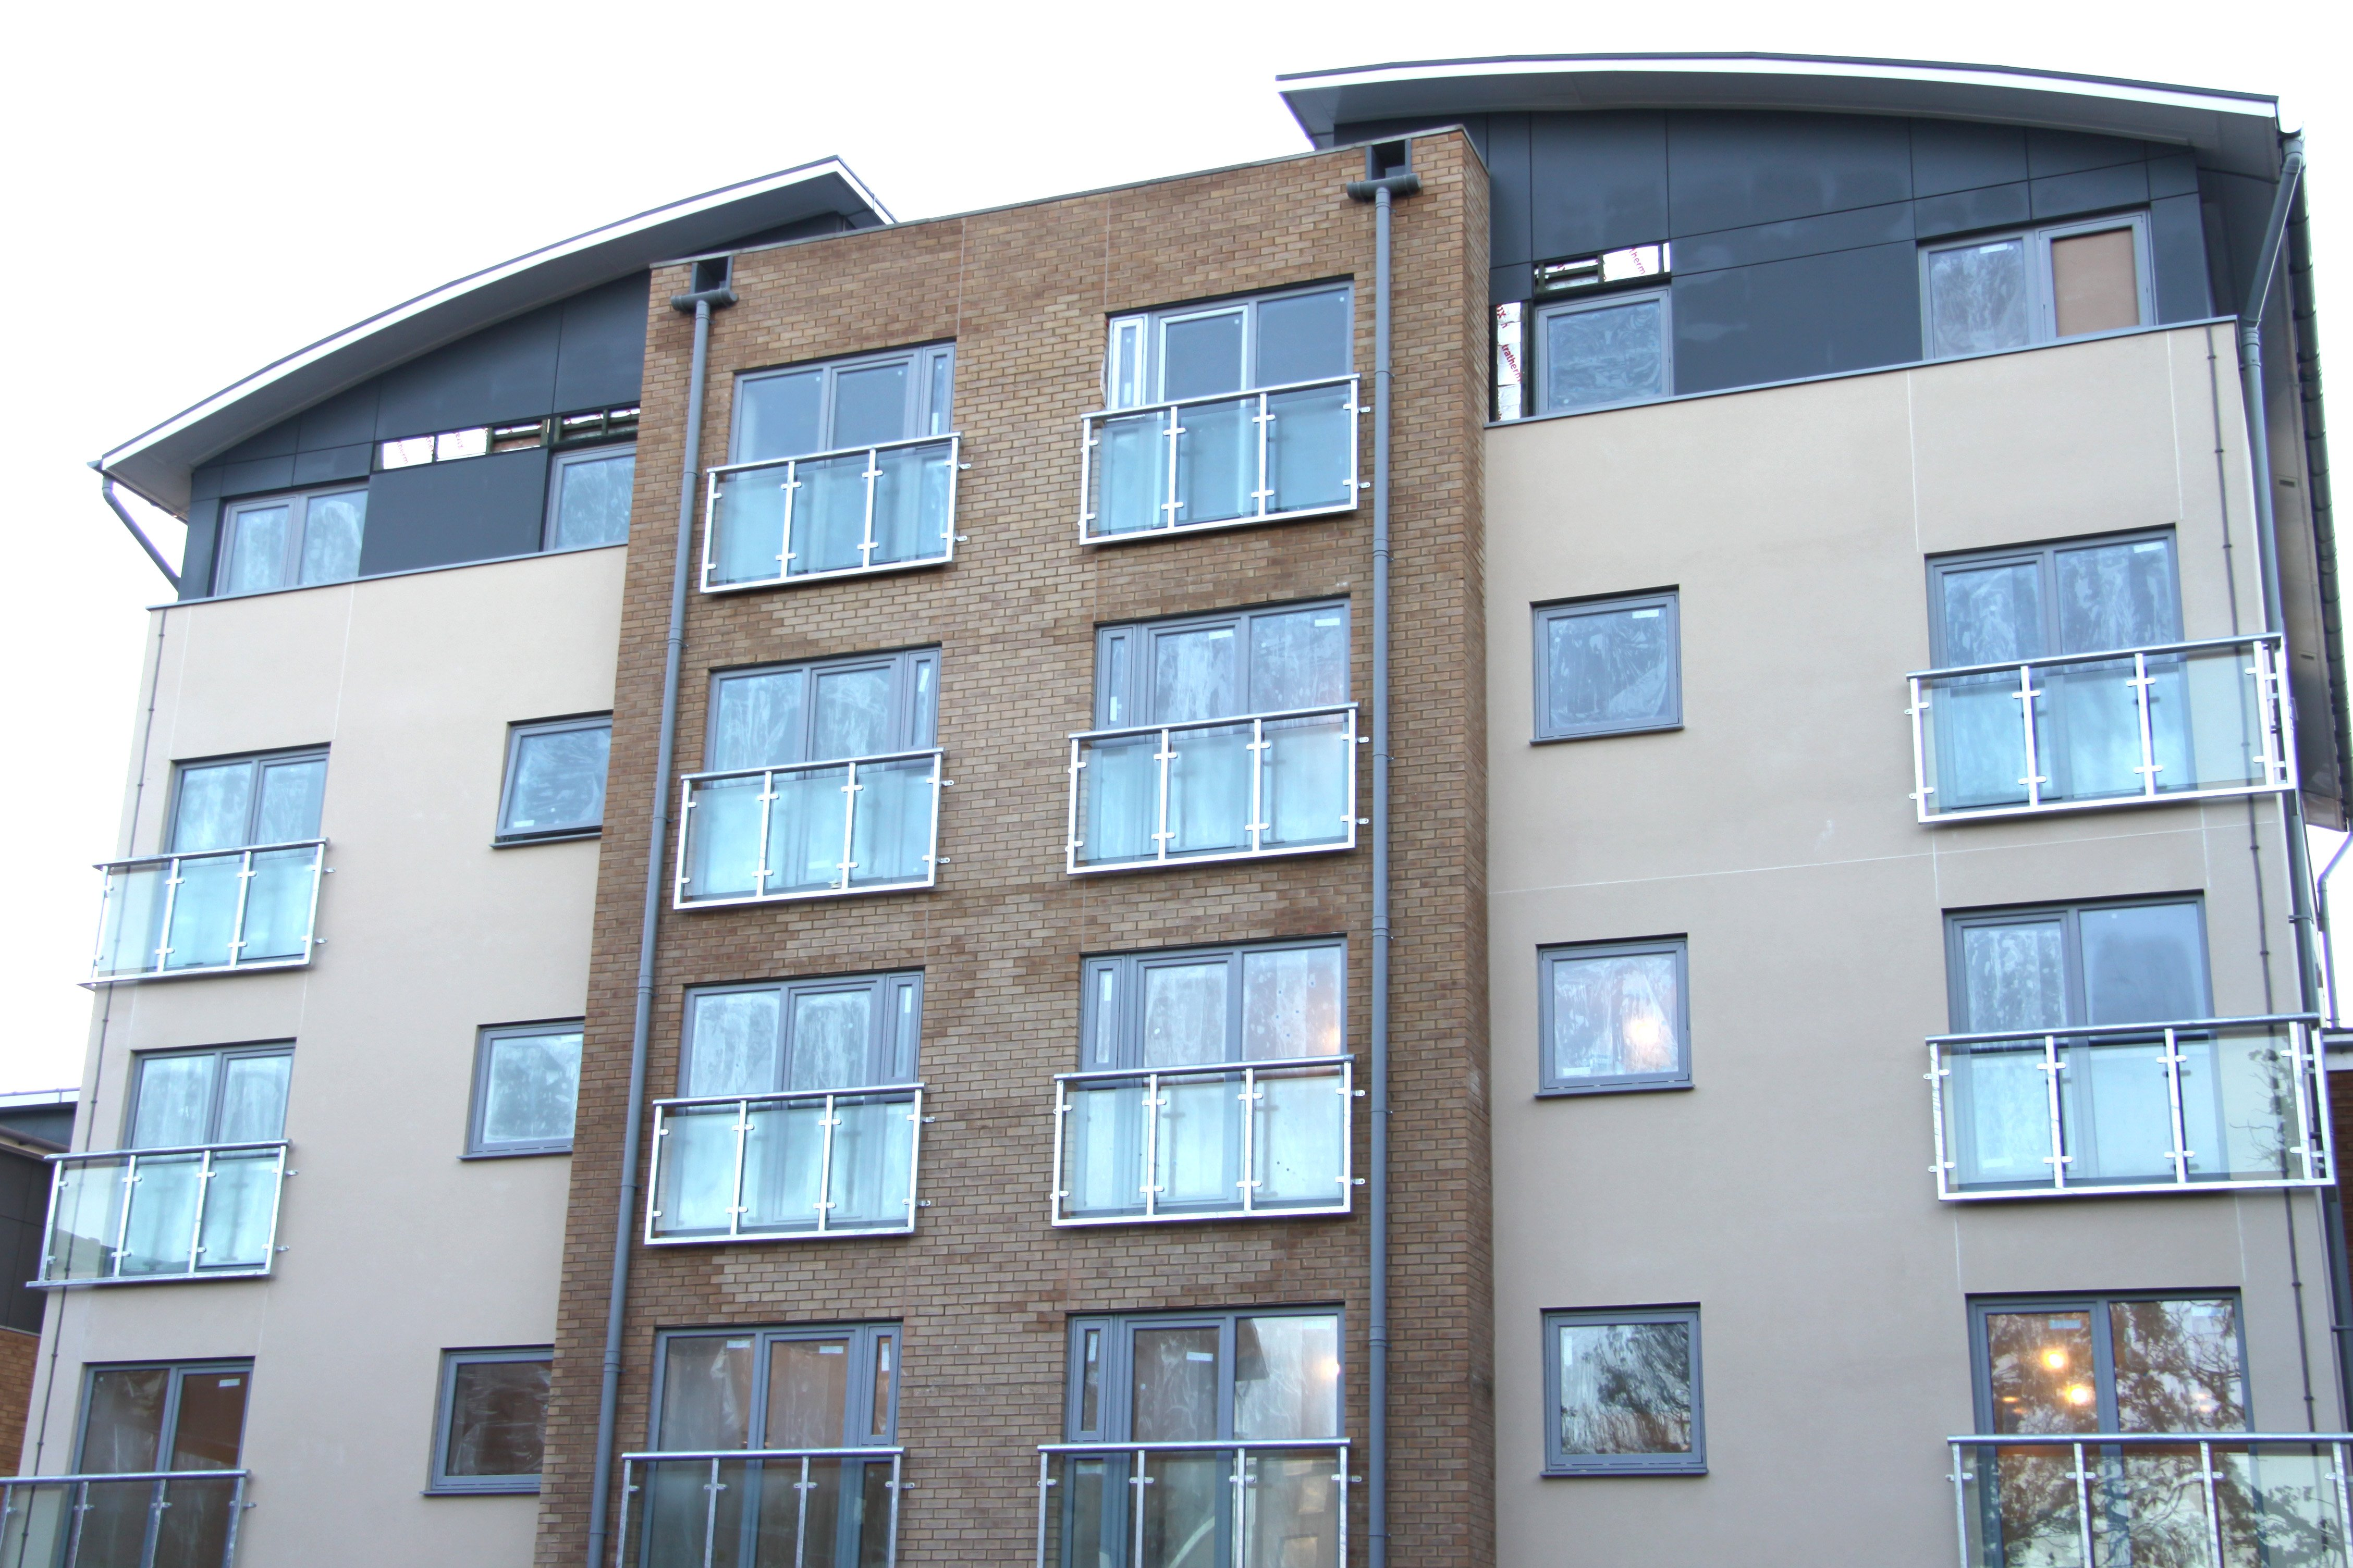 Painting and Decorating of New Build Development